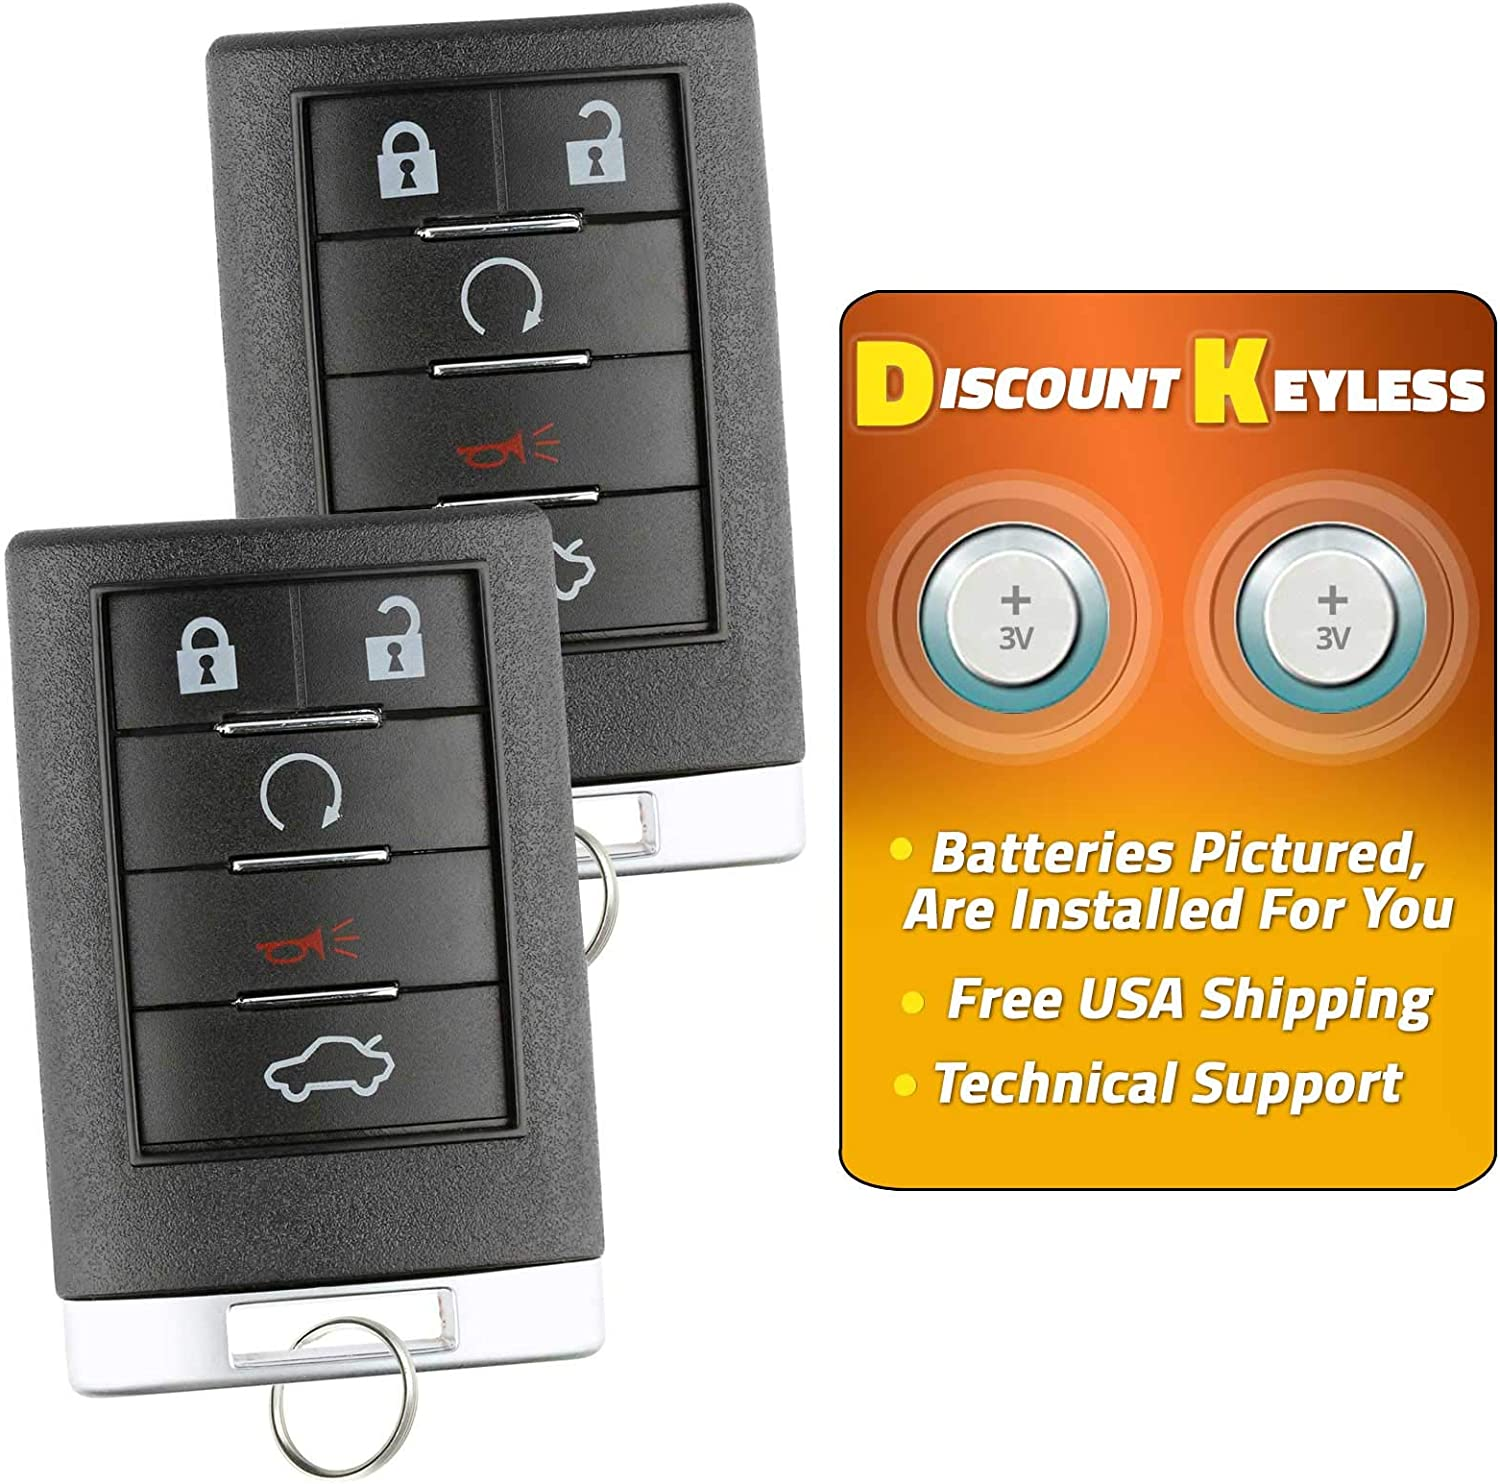 2 Pack Discount Keyless Replacement Key Fob Car Remote Compatible with OUC6000066 850K-6000066